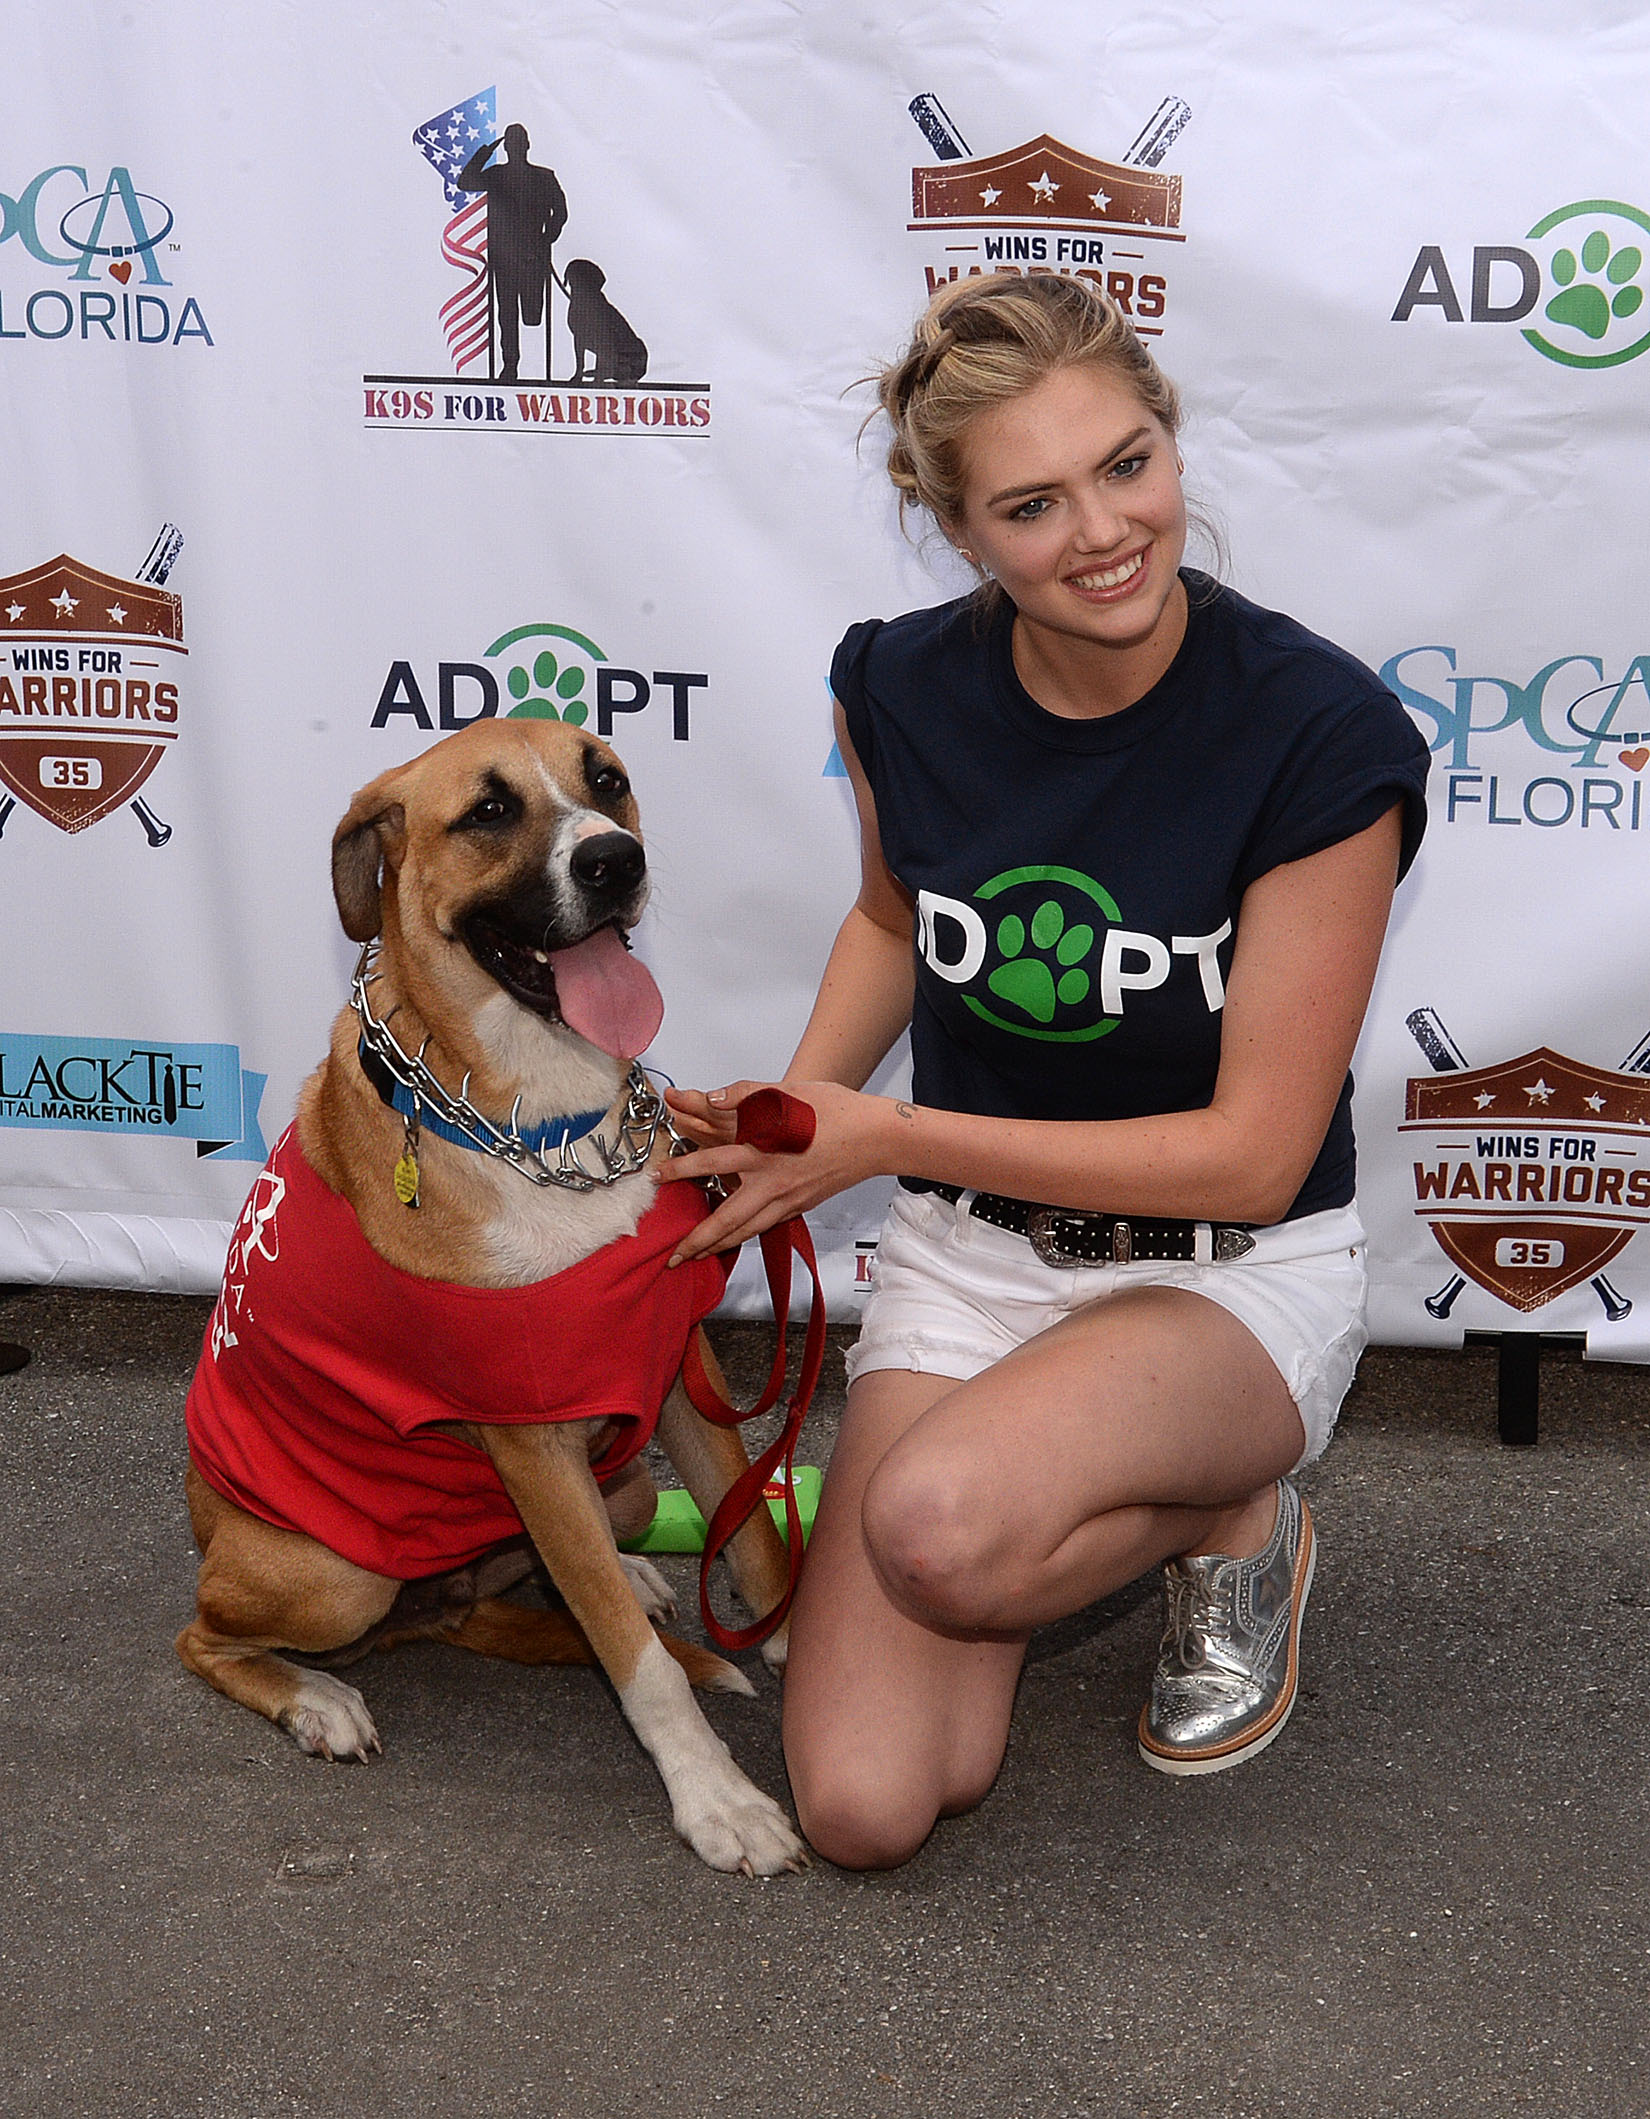 Pictured: Kate Upton at 2nd Annual Grand Slam Adoption Event in Lakeland, FL Ref: SPL1255028 310316 Picture by: Jason Winslow / Splash News Splash News and Pictures Los Angeles:310-821-2666 New York: 212-619-2666 London: 870-934-2666 photodesk@splashnews.com